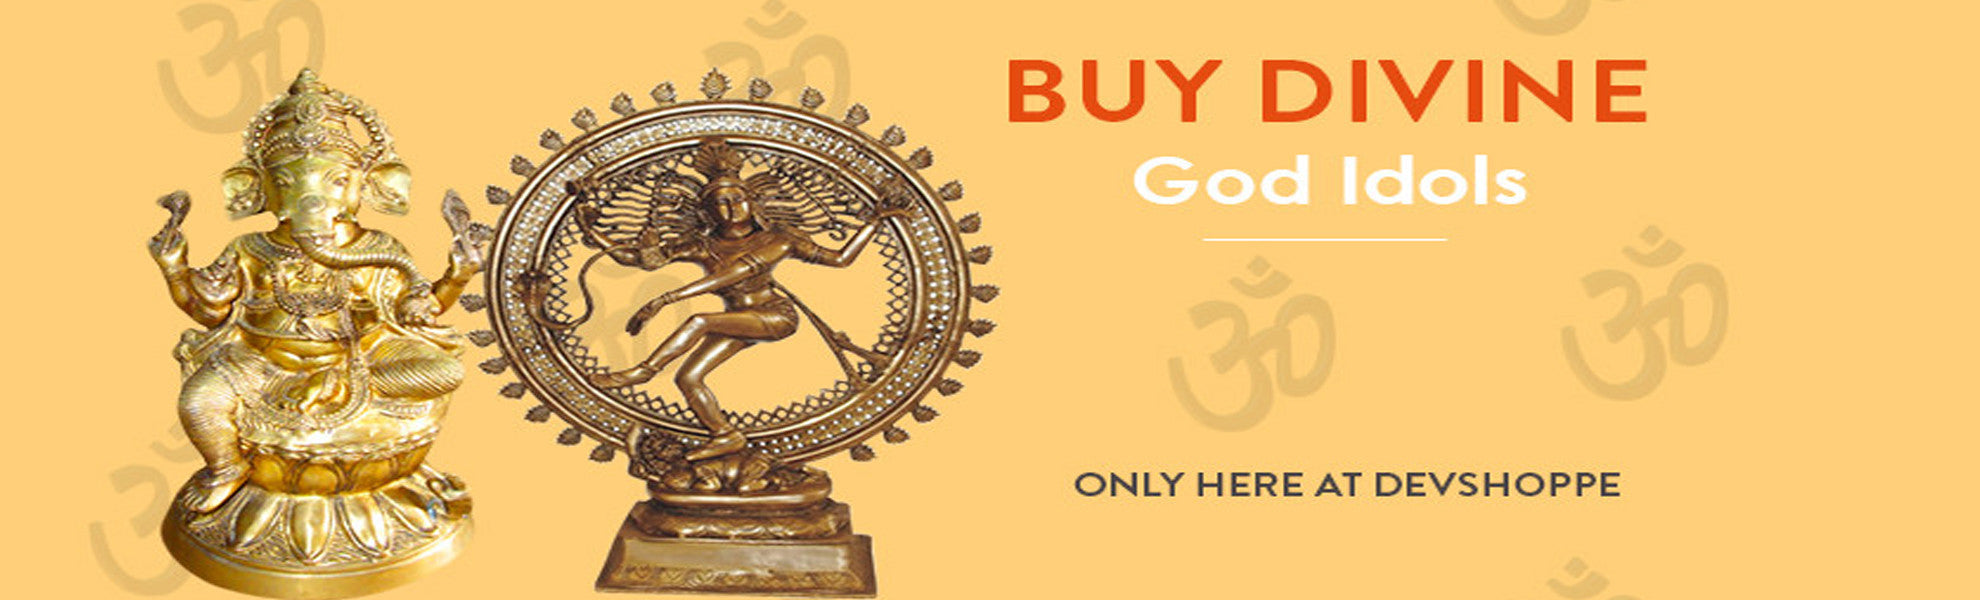 Buy Divine god idols at www.devshoppe.com